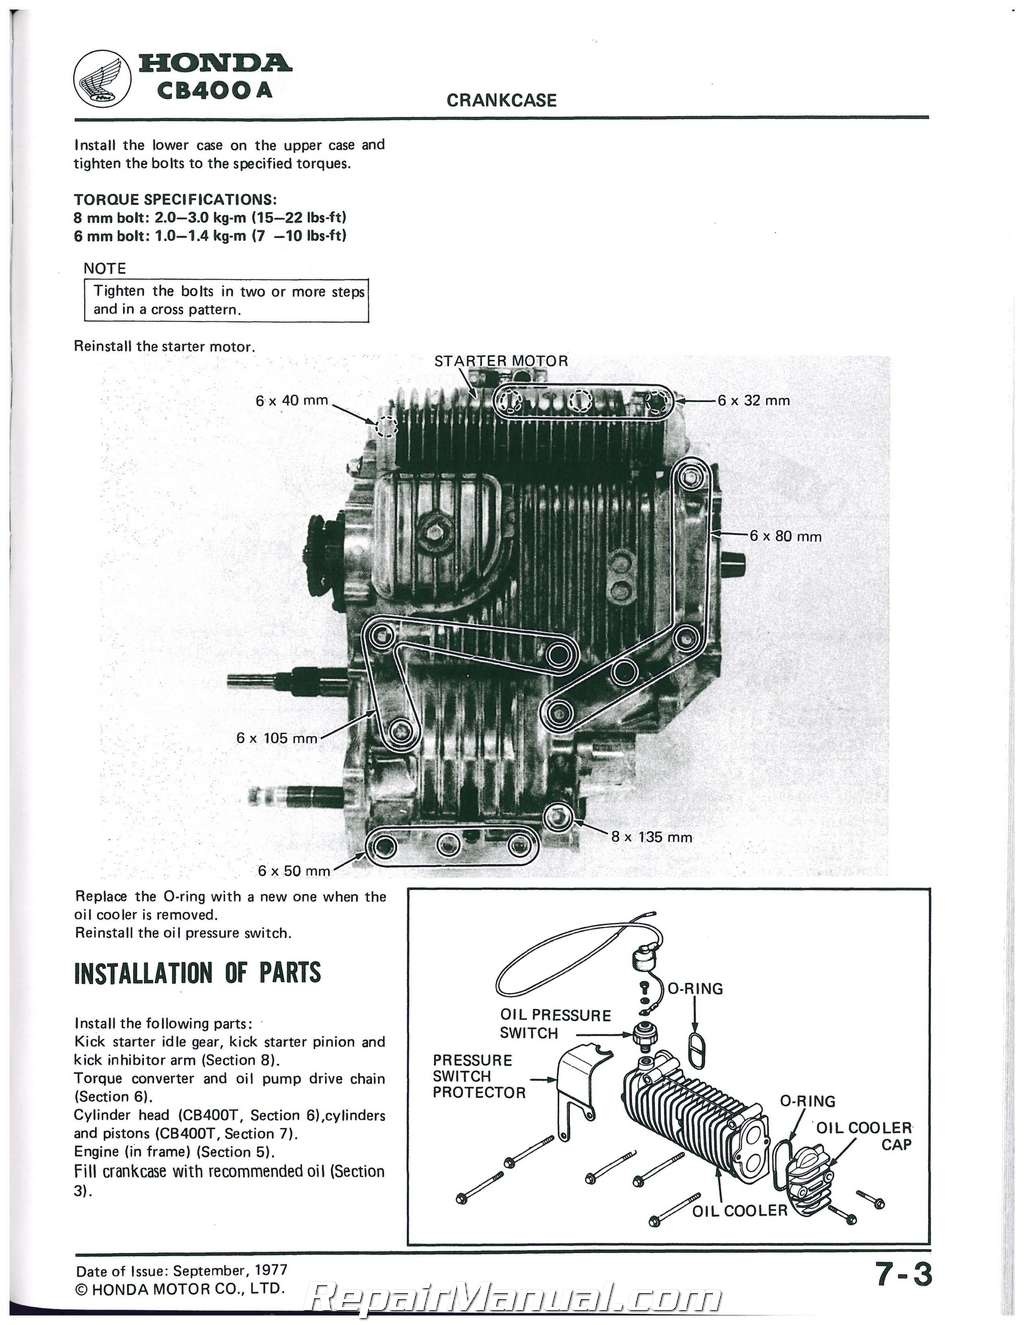 1978 1981 Honda Cb400 Cm400 Motorcycle Service Repair Manual